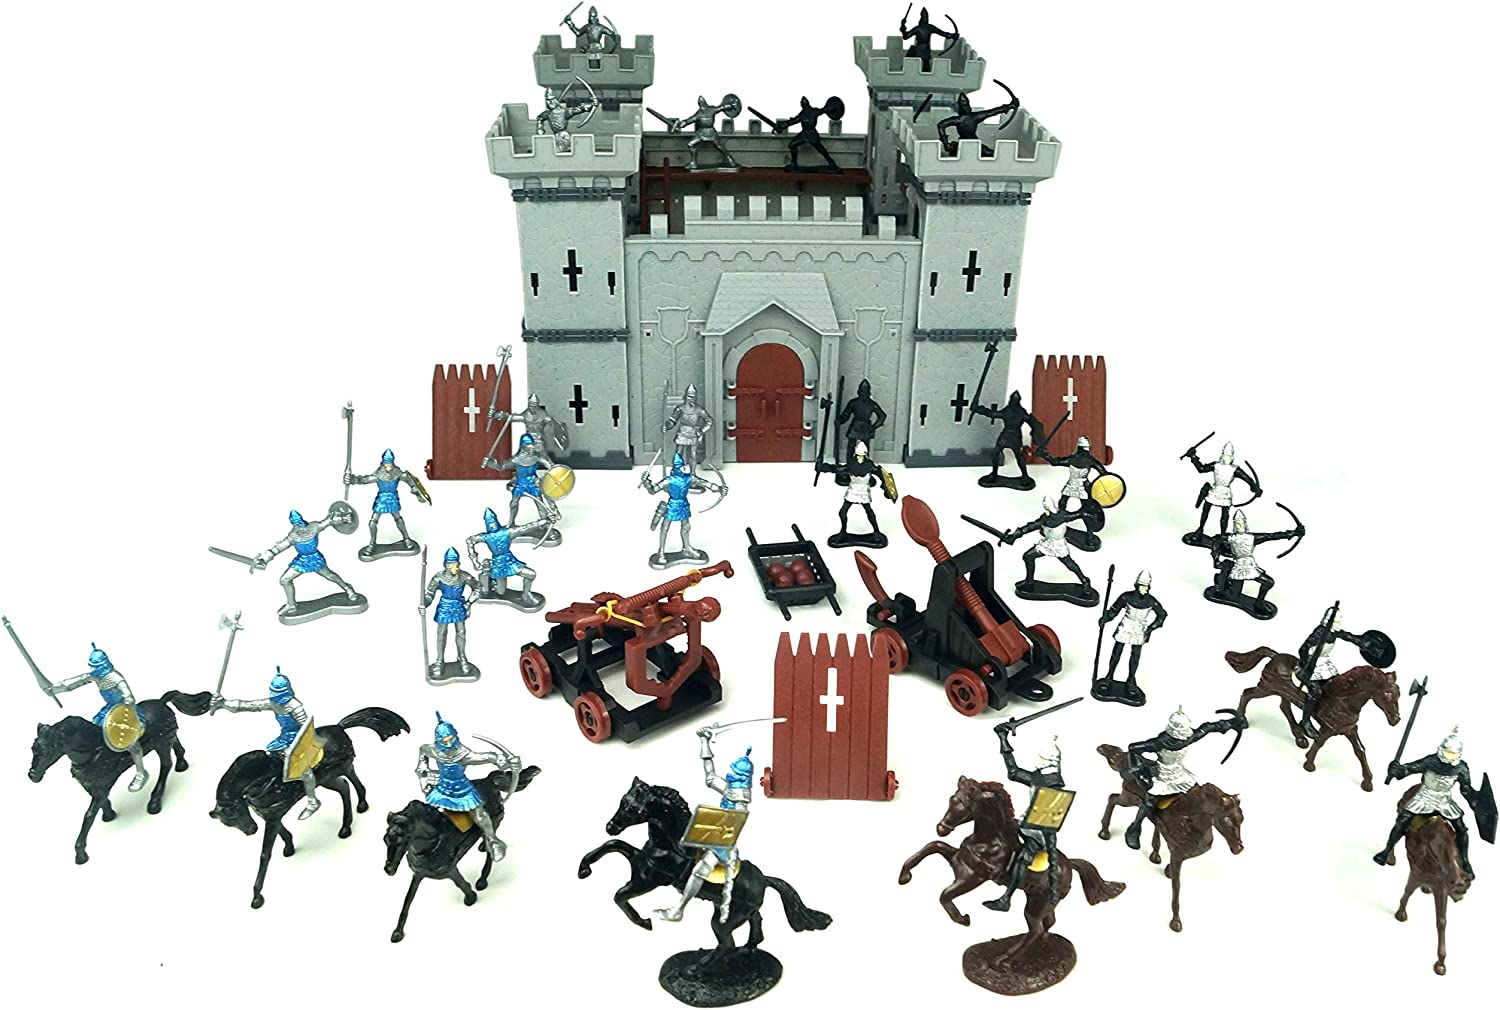 TYCBOY Colorful Character Modeling DIY Castle Building The Medieval Times Middle Ages Military Plastic Fort Model Kit Set with Figures Soldier Knight Simulated Siege War of Attack